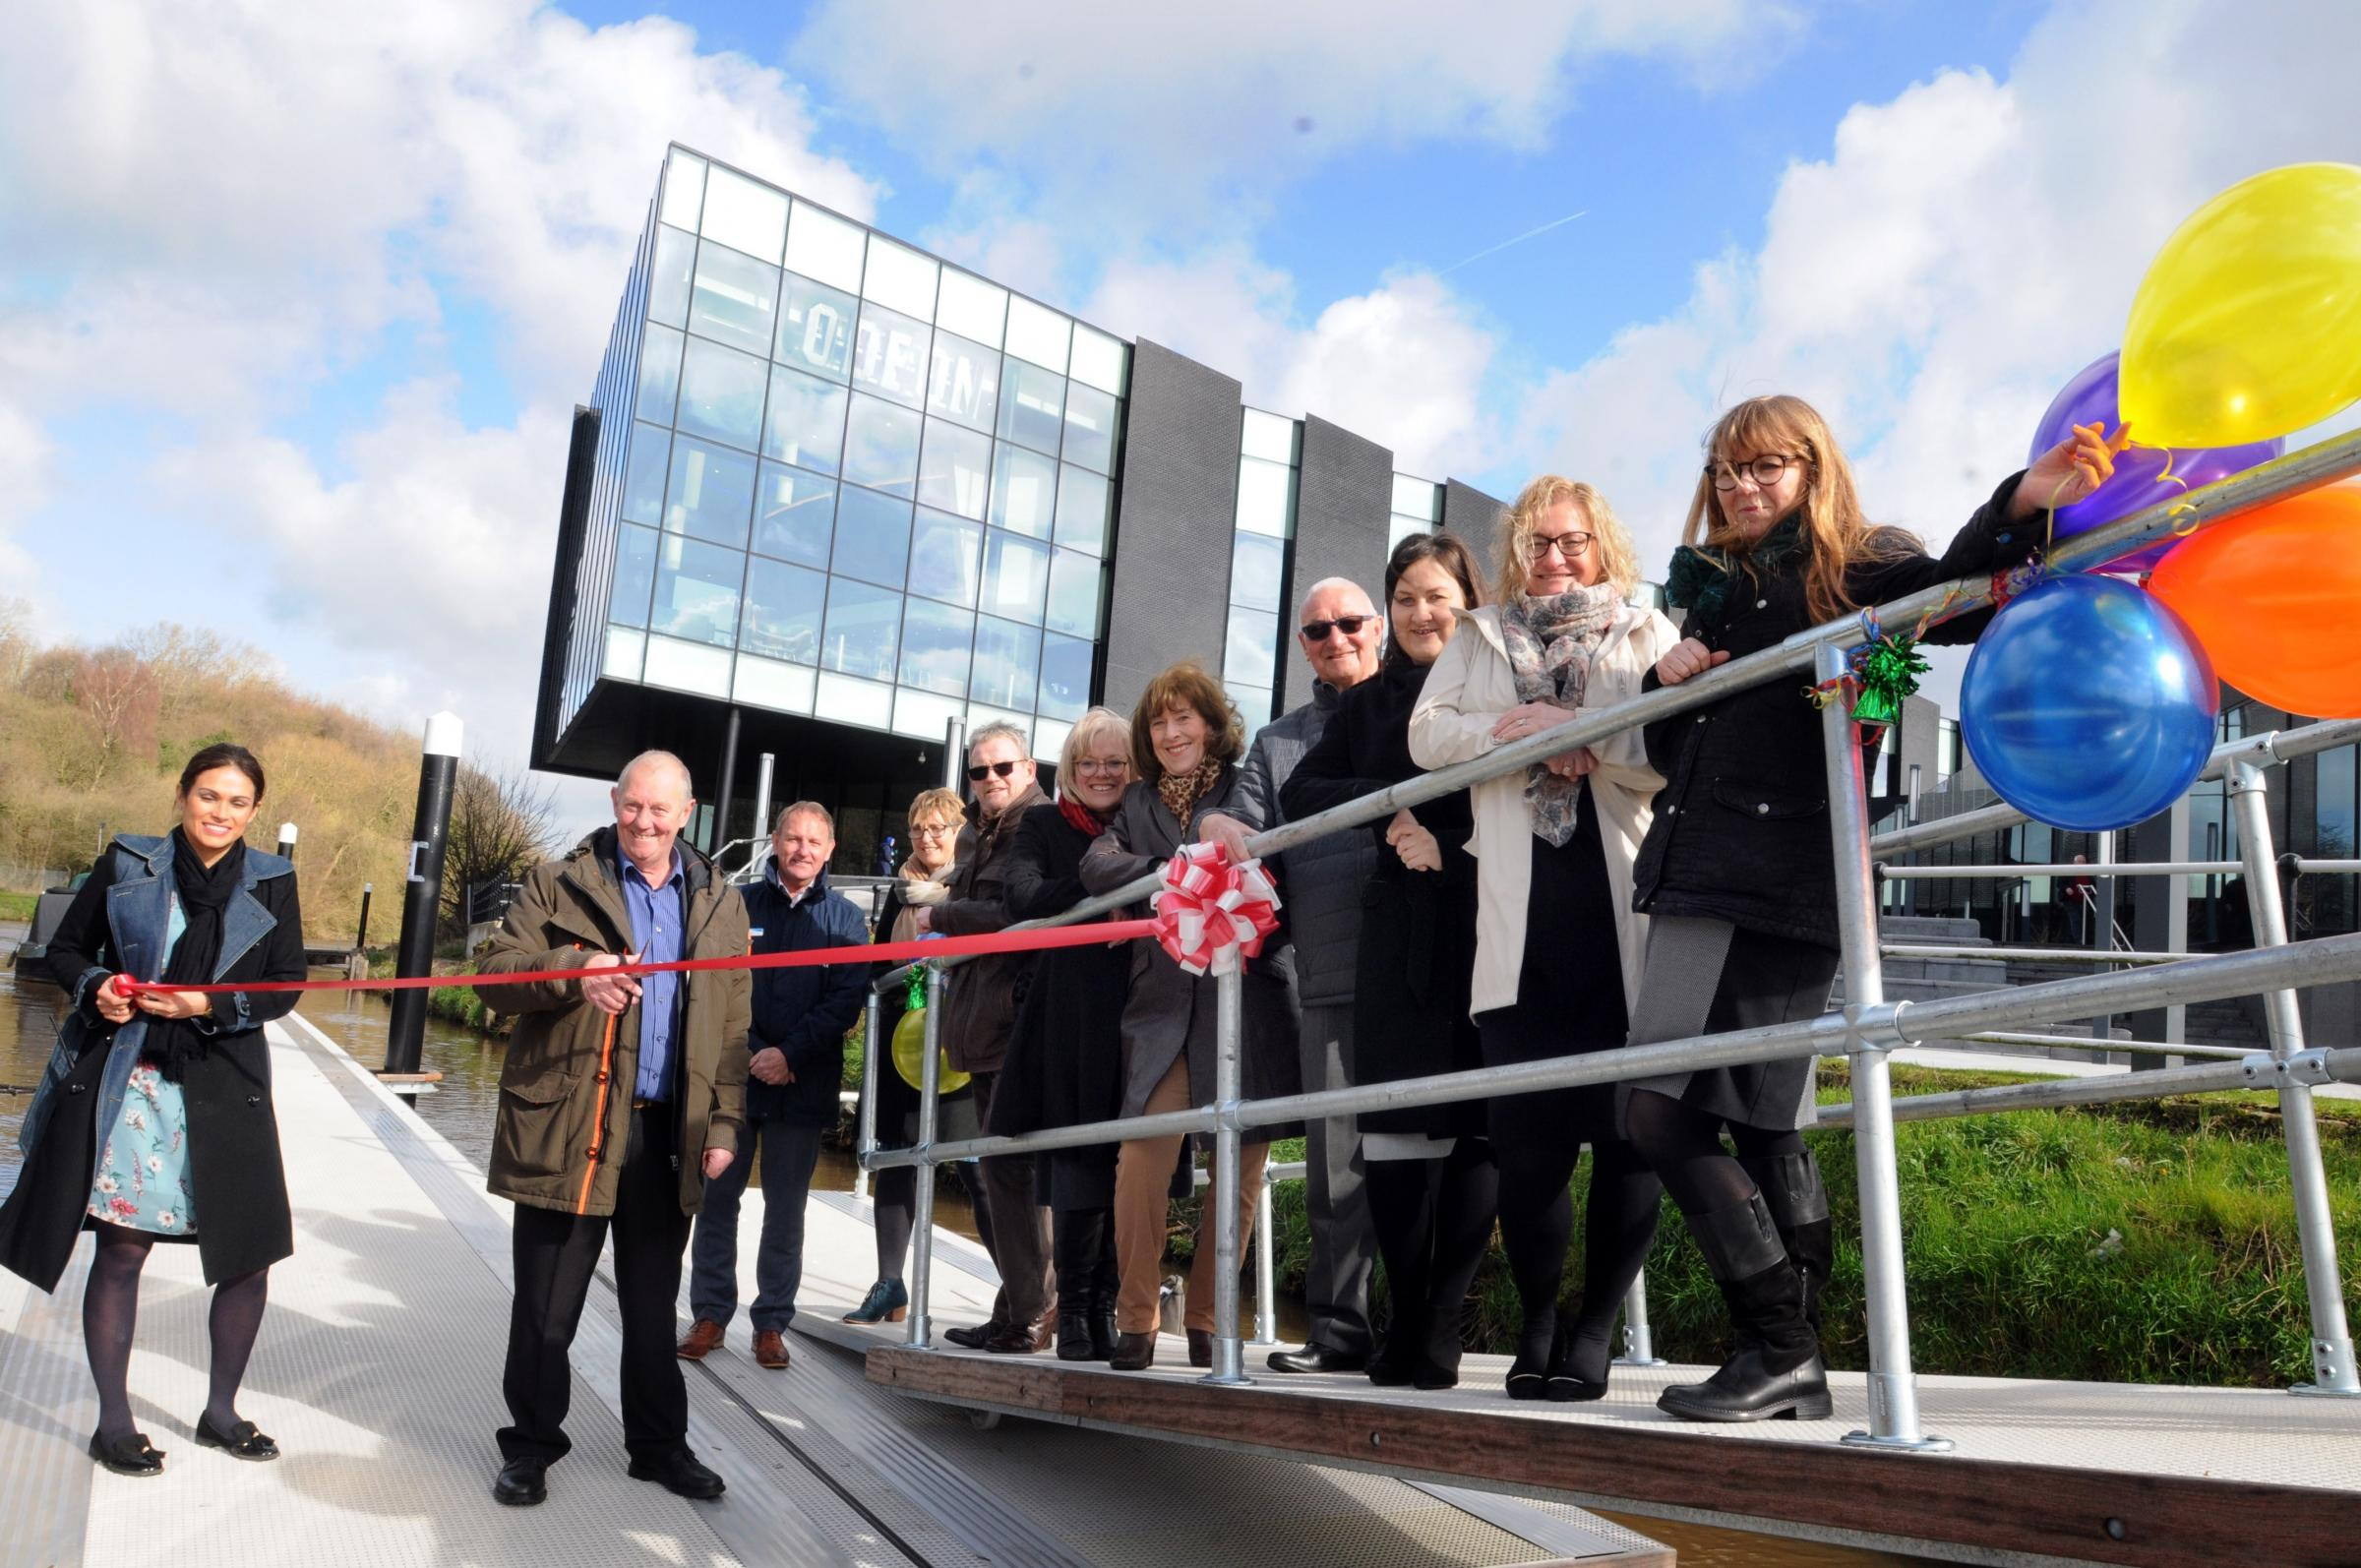 Cllr Brian Clarke cuts the ribbon at the official opening of the new Barons Quay pontoon